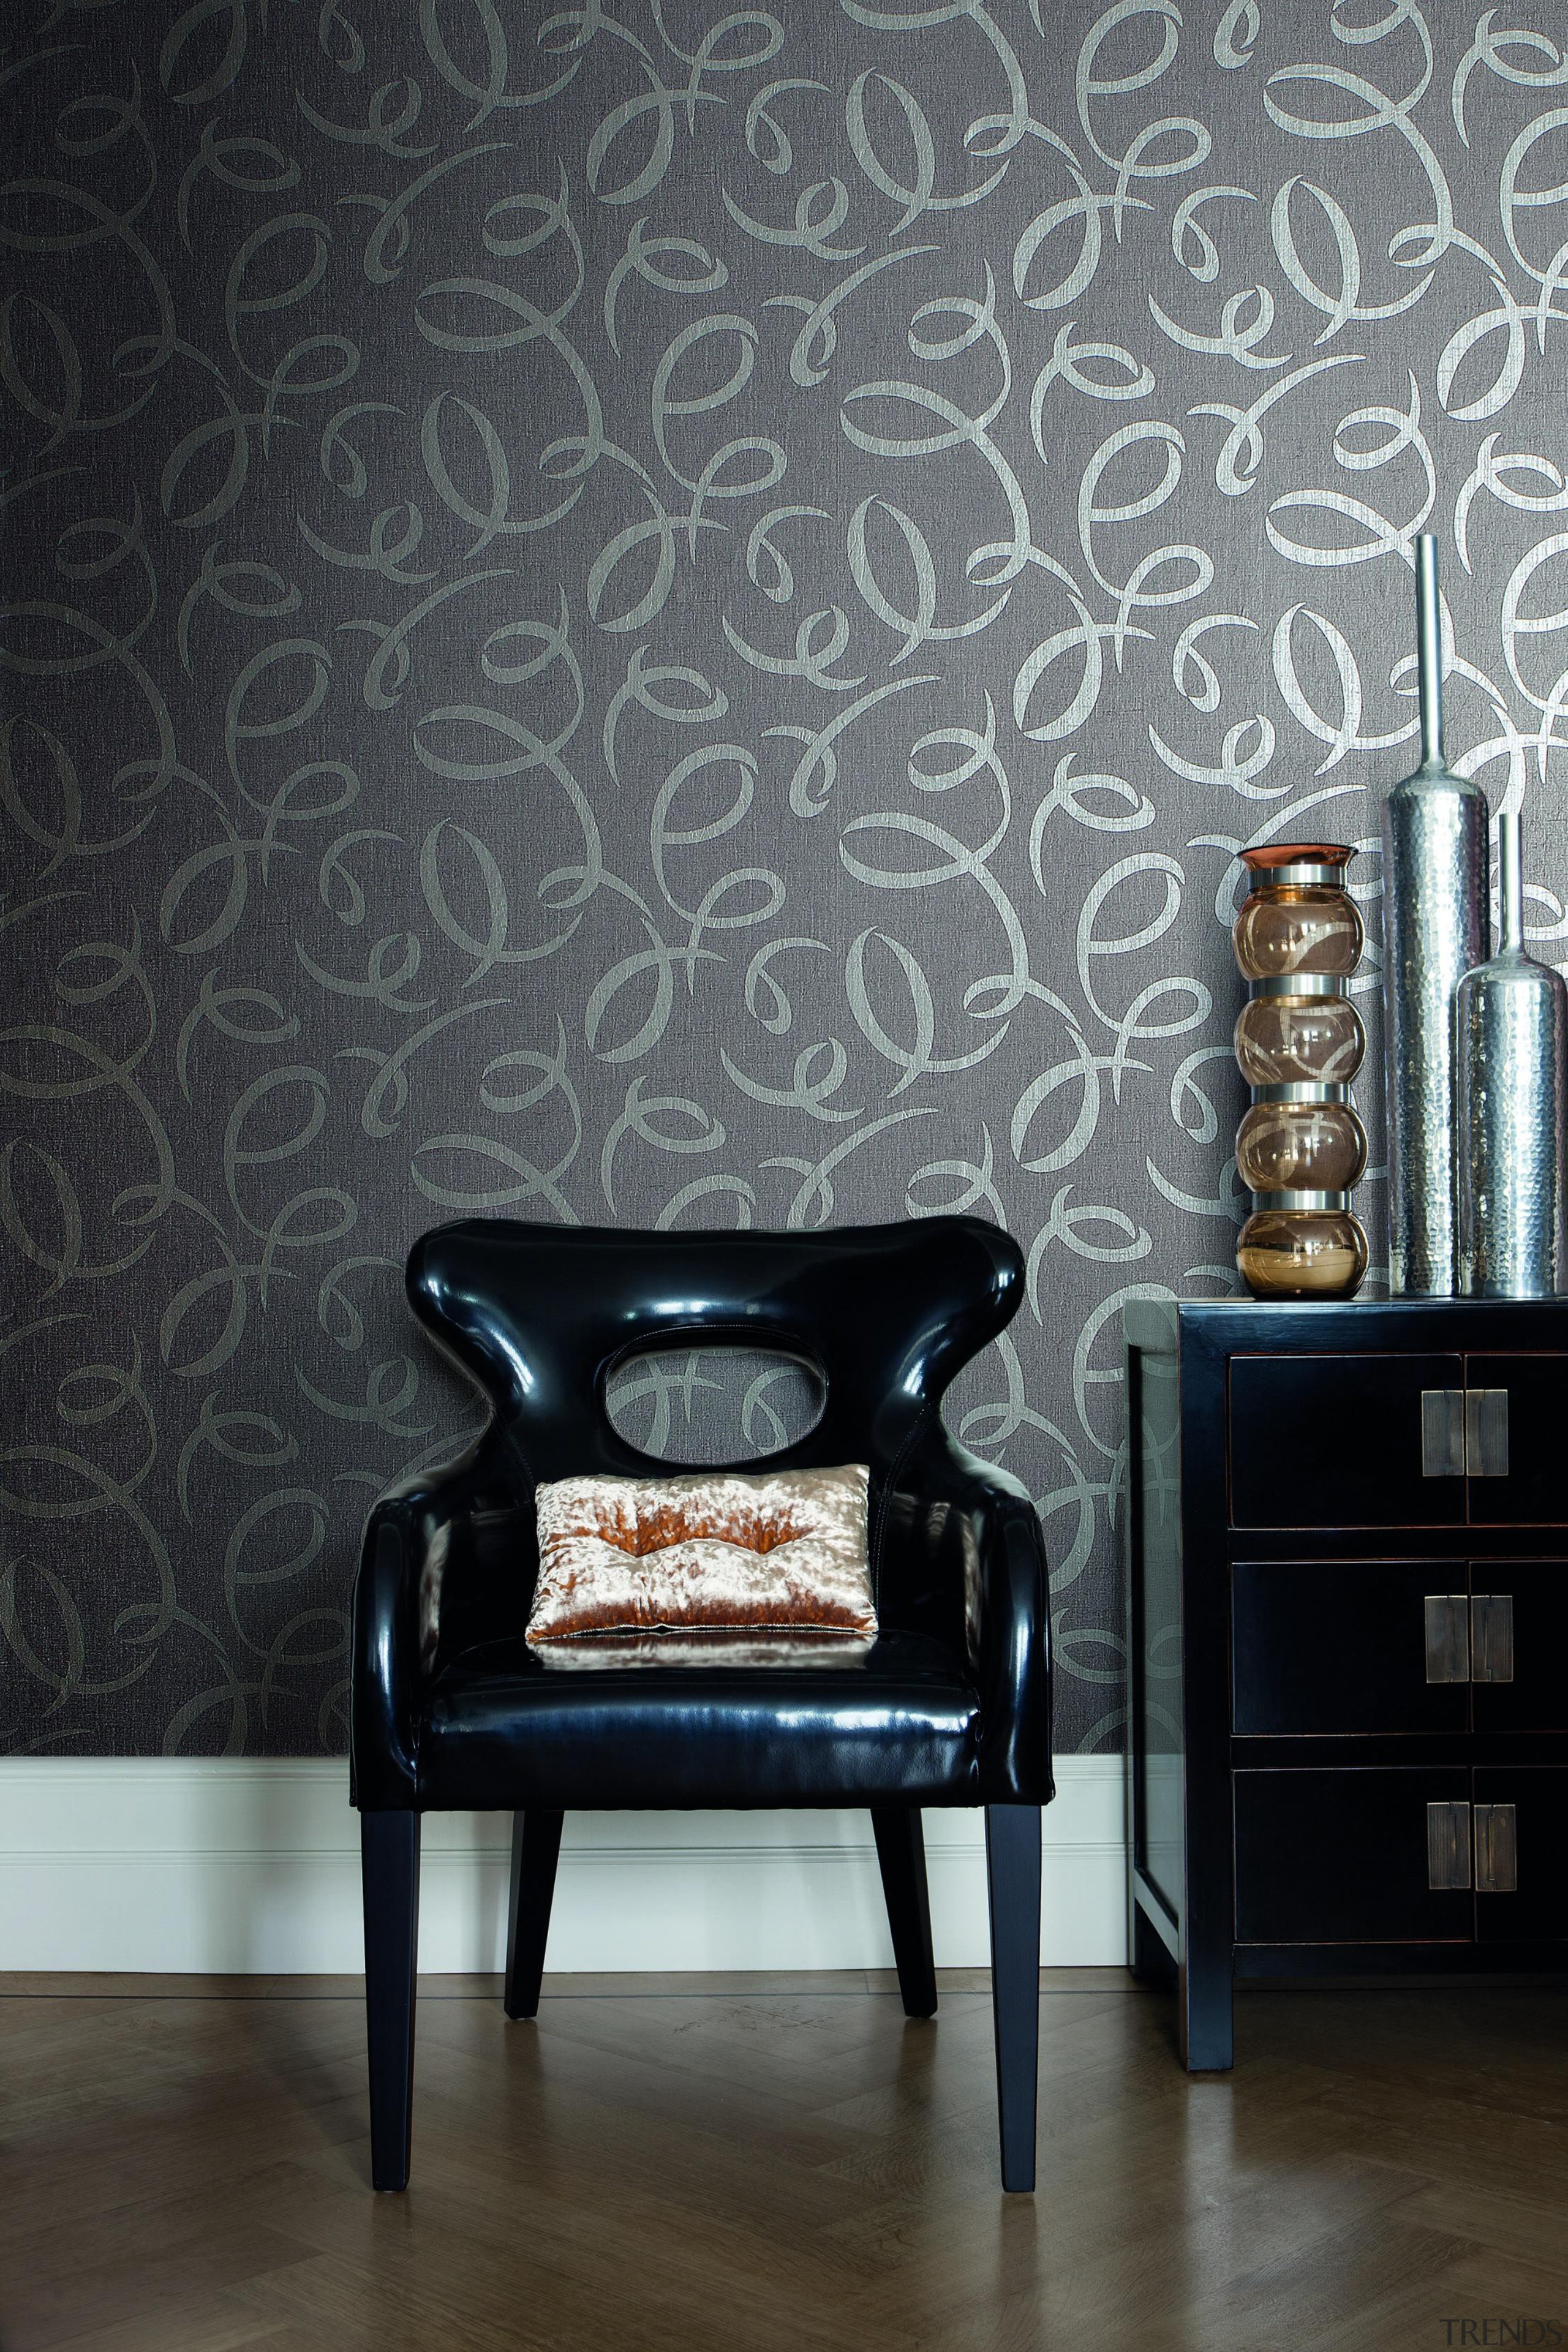 Hidden Richness Range - Hidden Richness Range - black, chair, couch, floor, furniture, interior design, living room, table, wall, wallpaper, black, gray